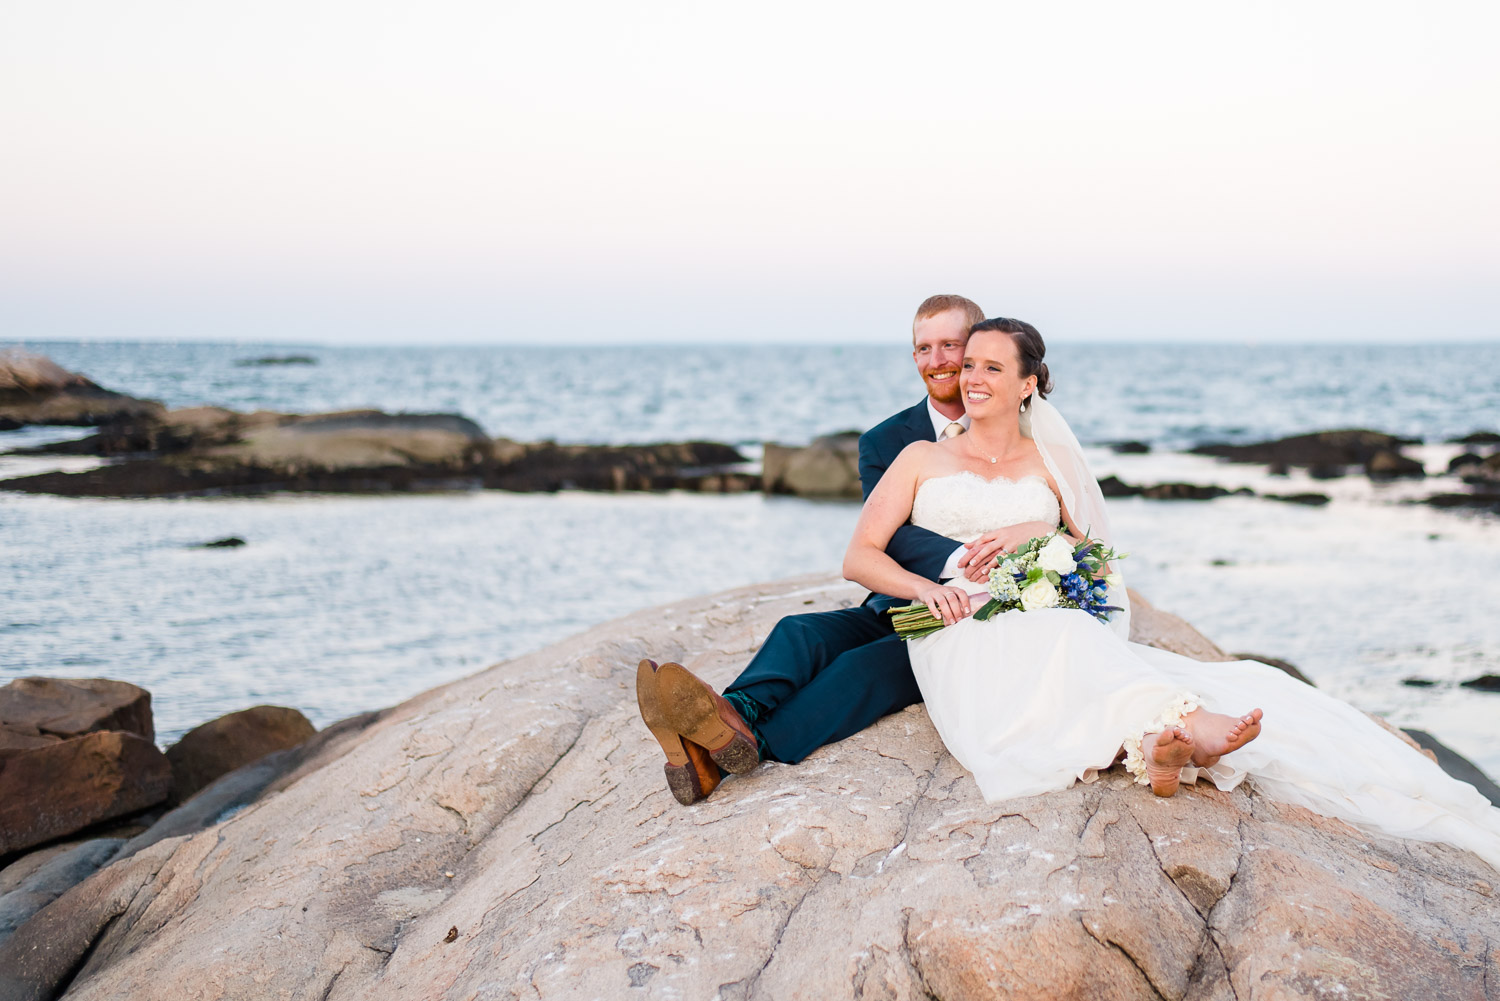 wedding photographer takes wedding couple out onto rocks for sunset photos